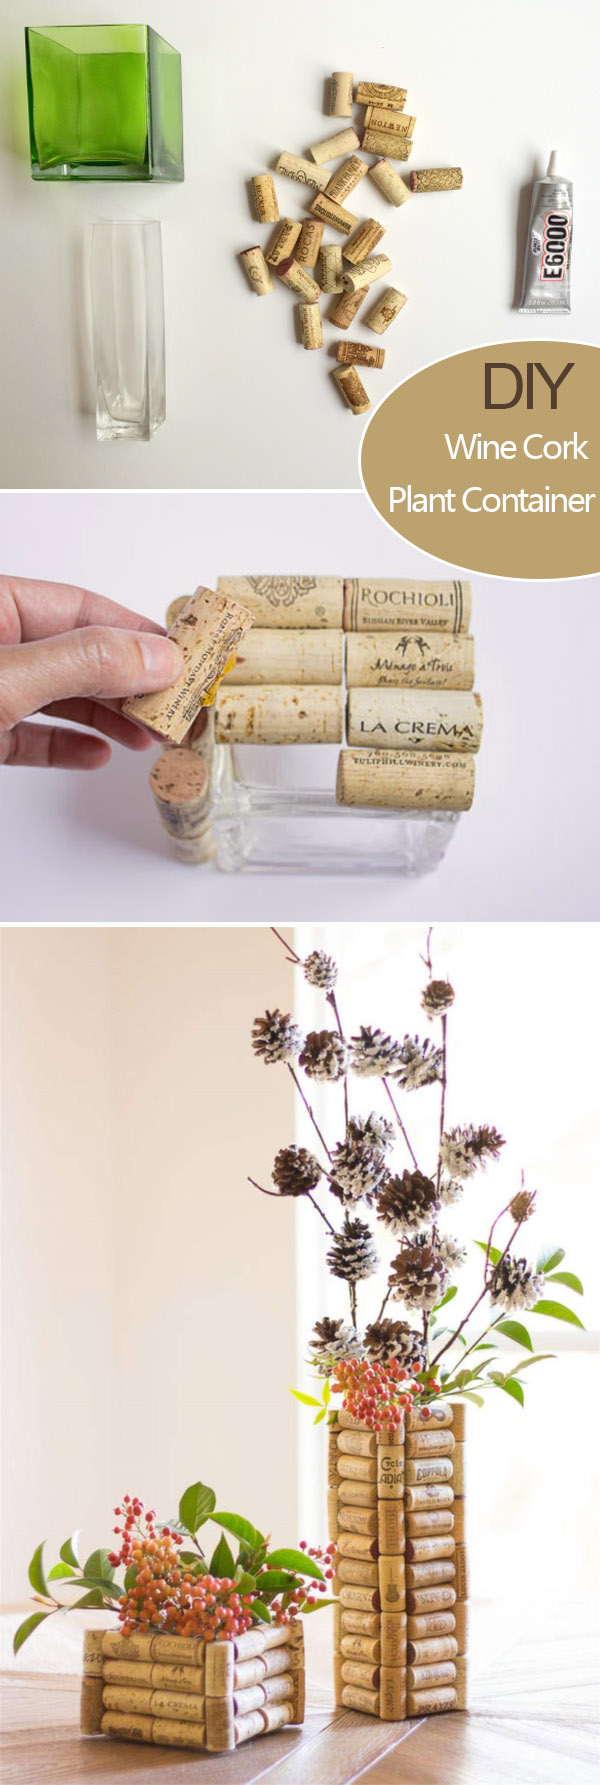 stylish and creat wine cork floral wedding decoration ideas